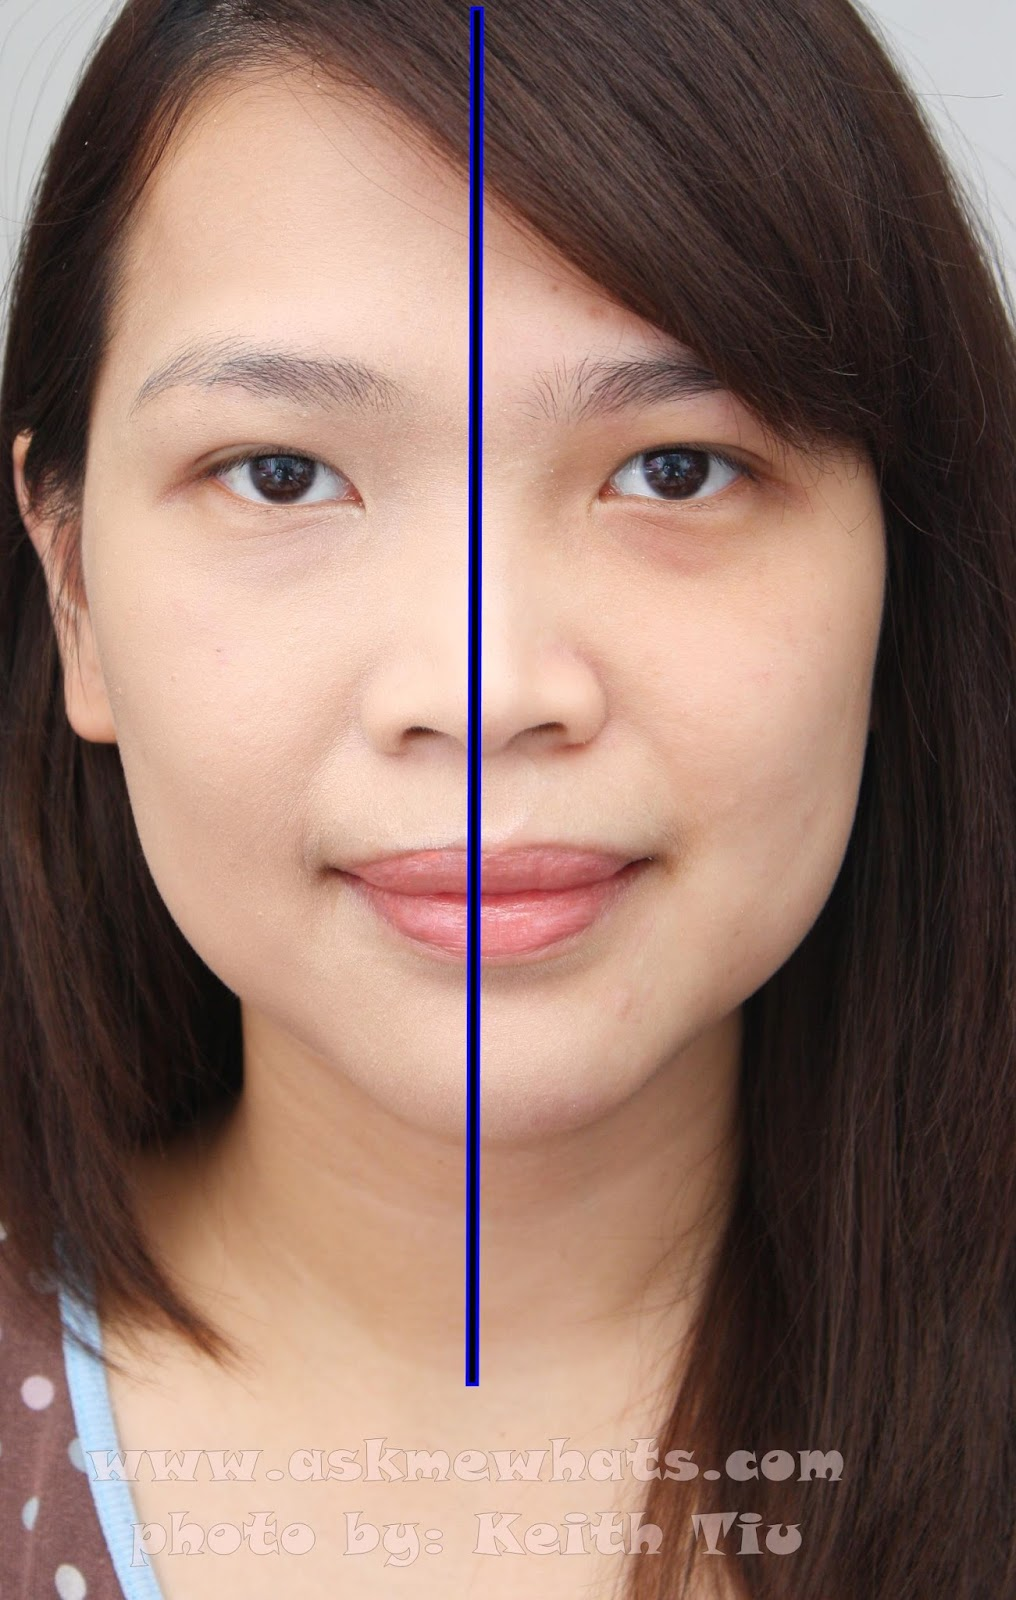 Before and after photo using Etude House Precious Mineral BB Cream Bright Fit